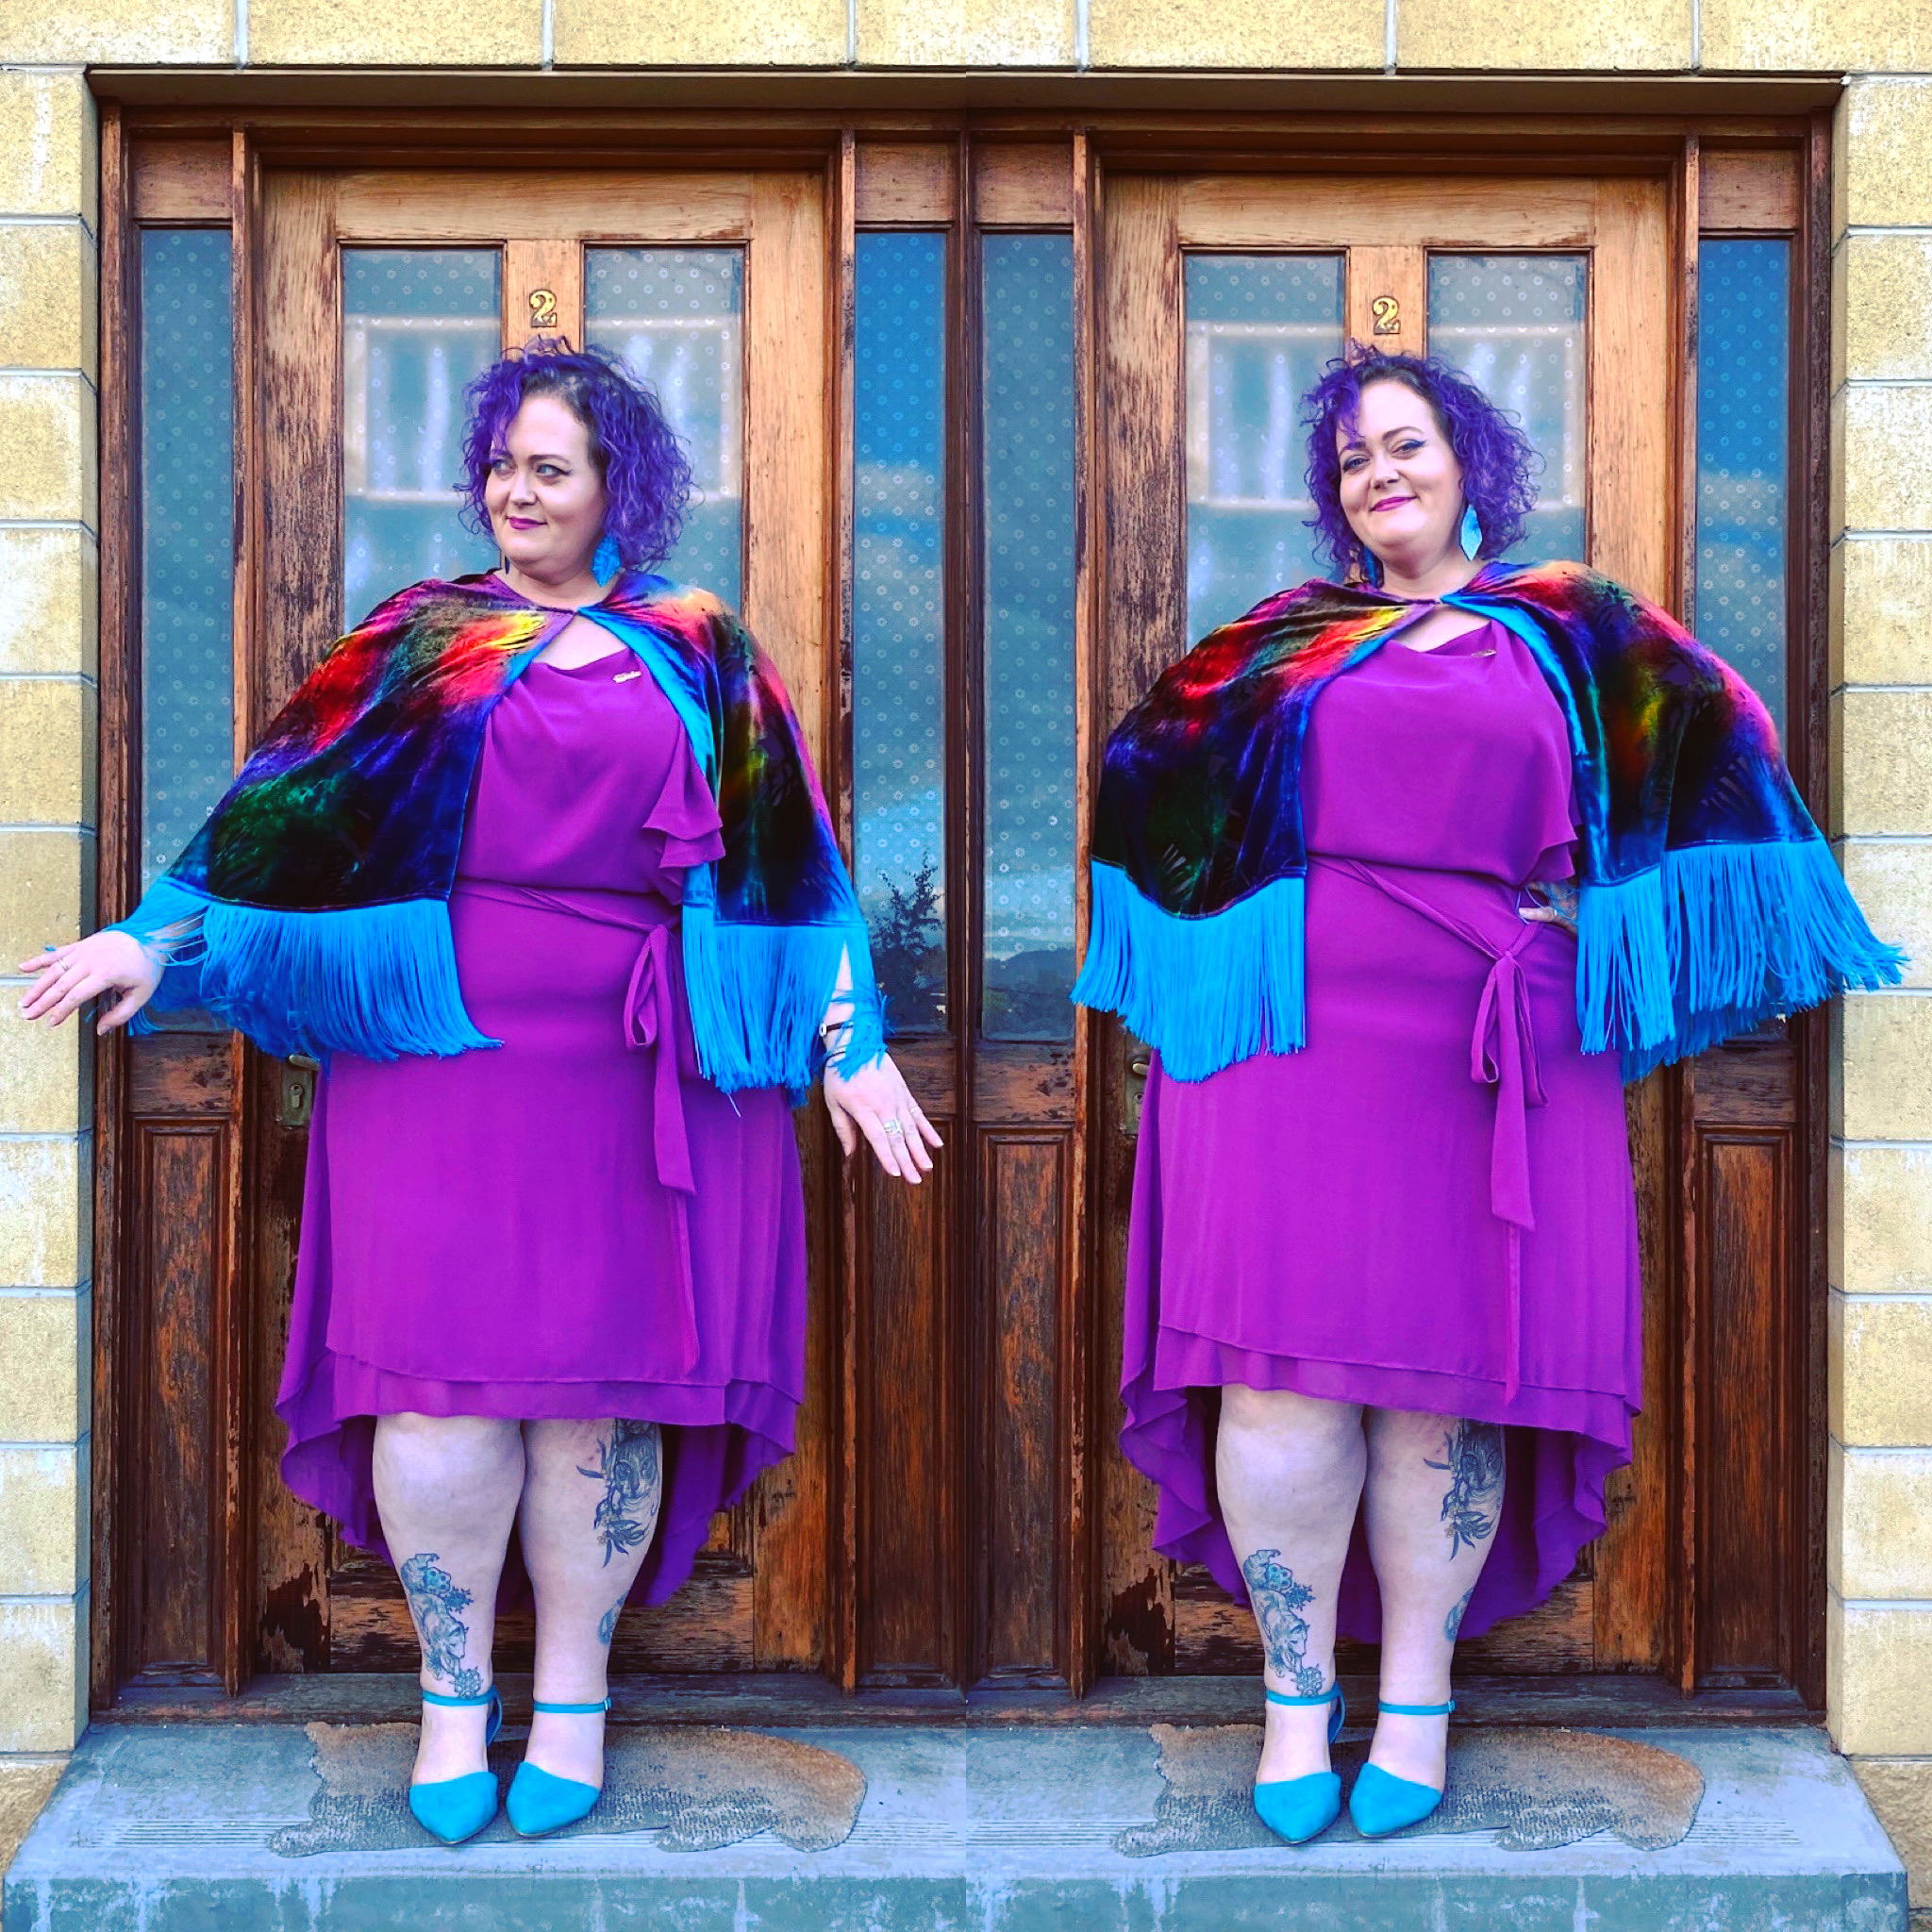 two side by side photos of fat woman with purple hair wearing a pink dress and a fabulous rainbow cape